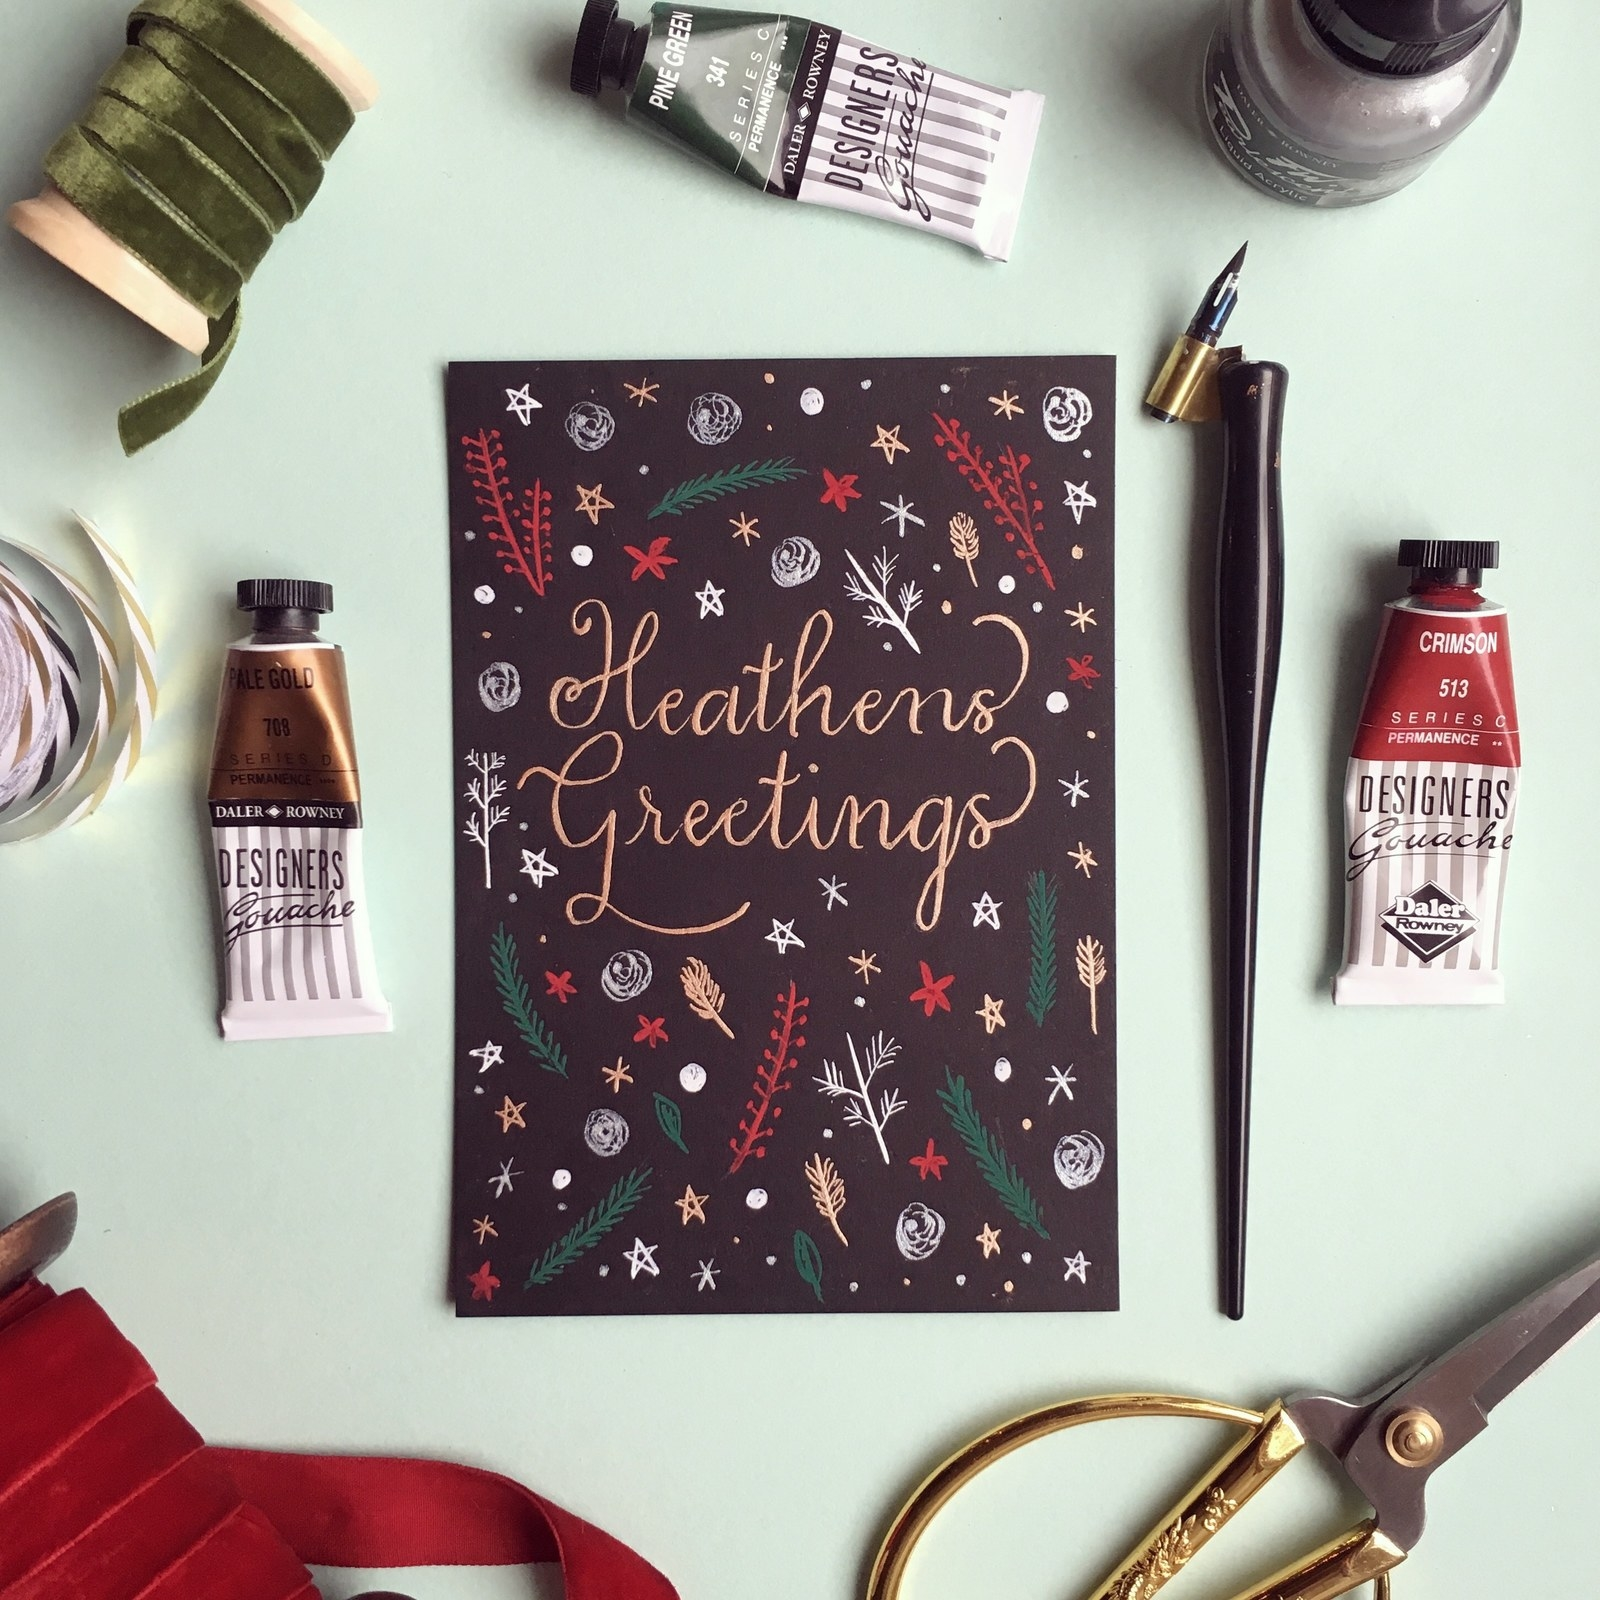 Calligraphy Photo Editor Online 8 Tips For Anyone Who Wants To Learn Calligraphy And Hand Lettering